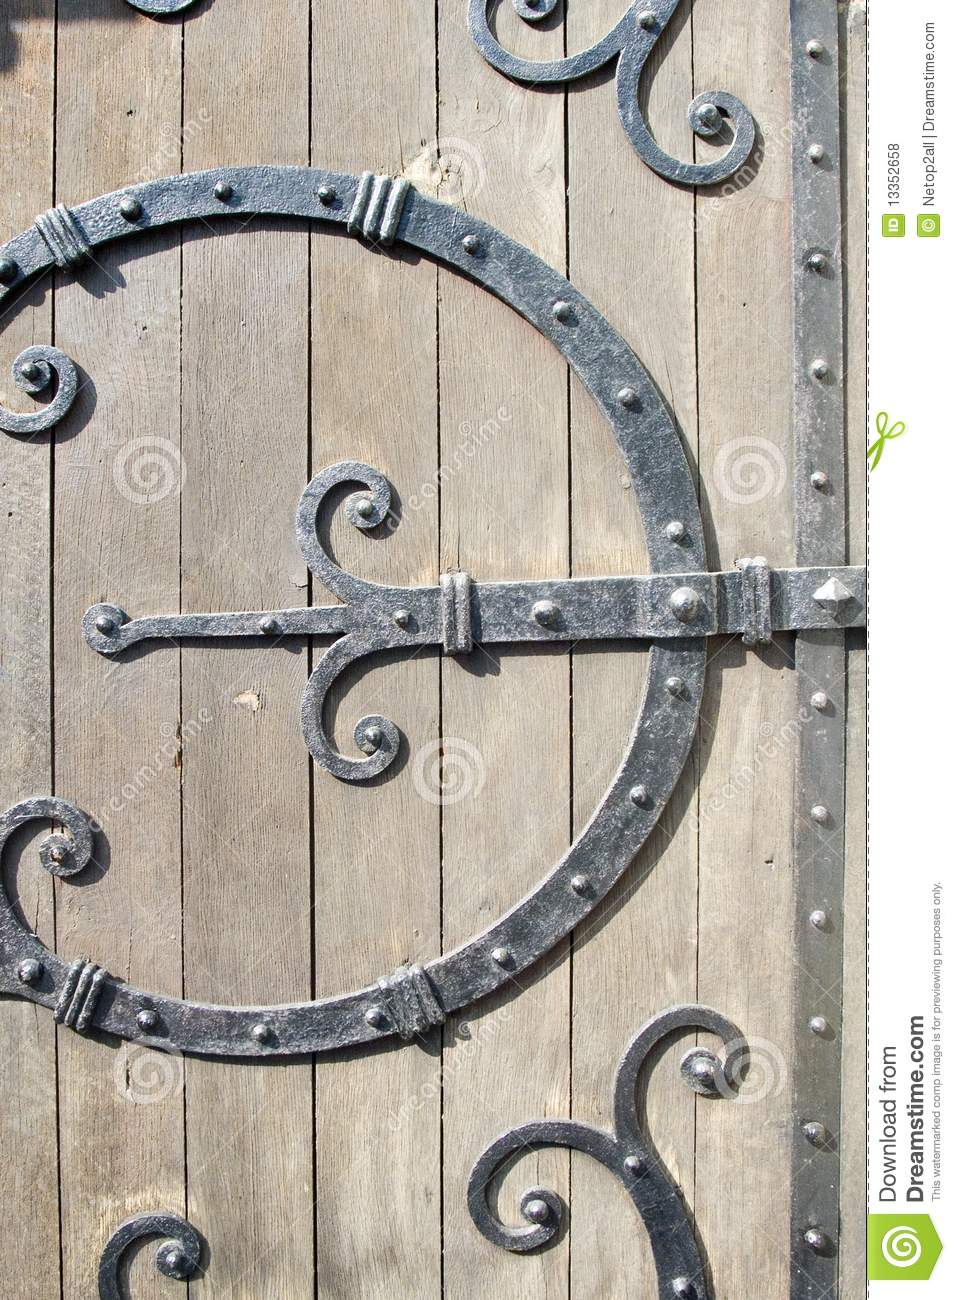 Ornamental Wrought Iron Door Hardware Stock Photo Image 13352658